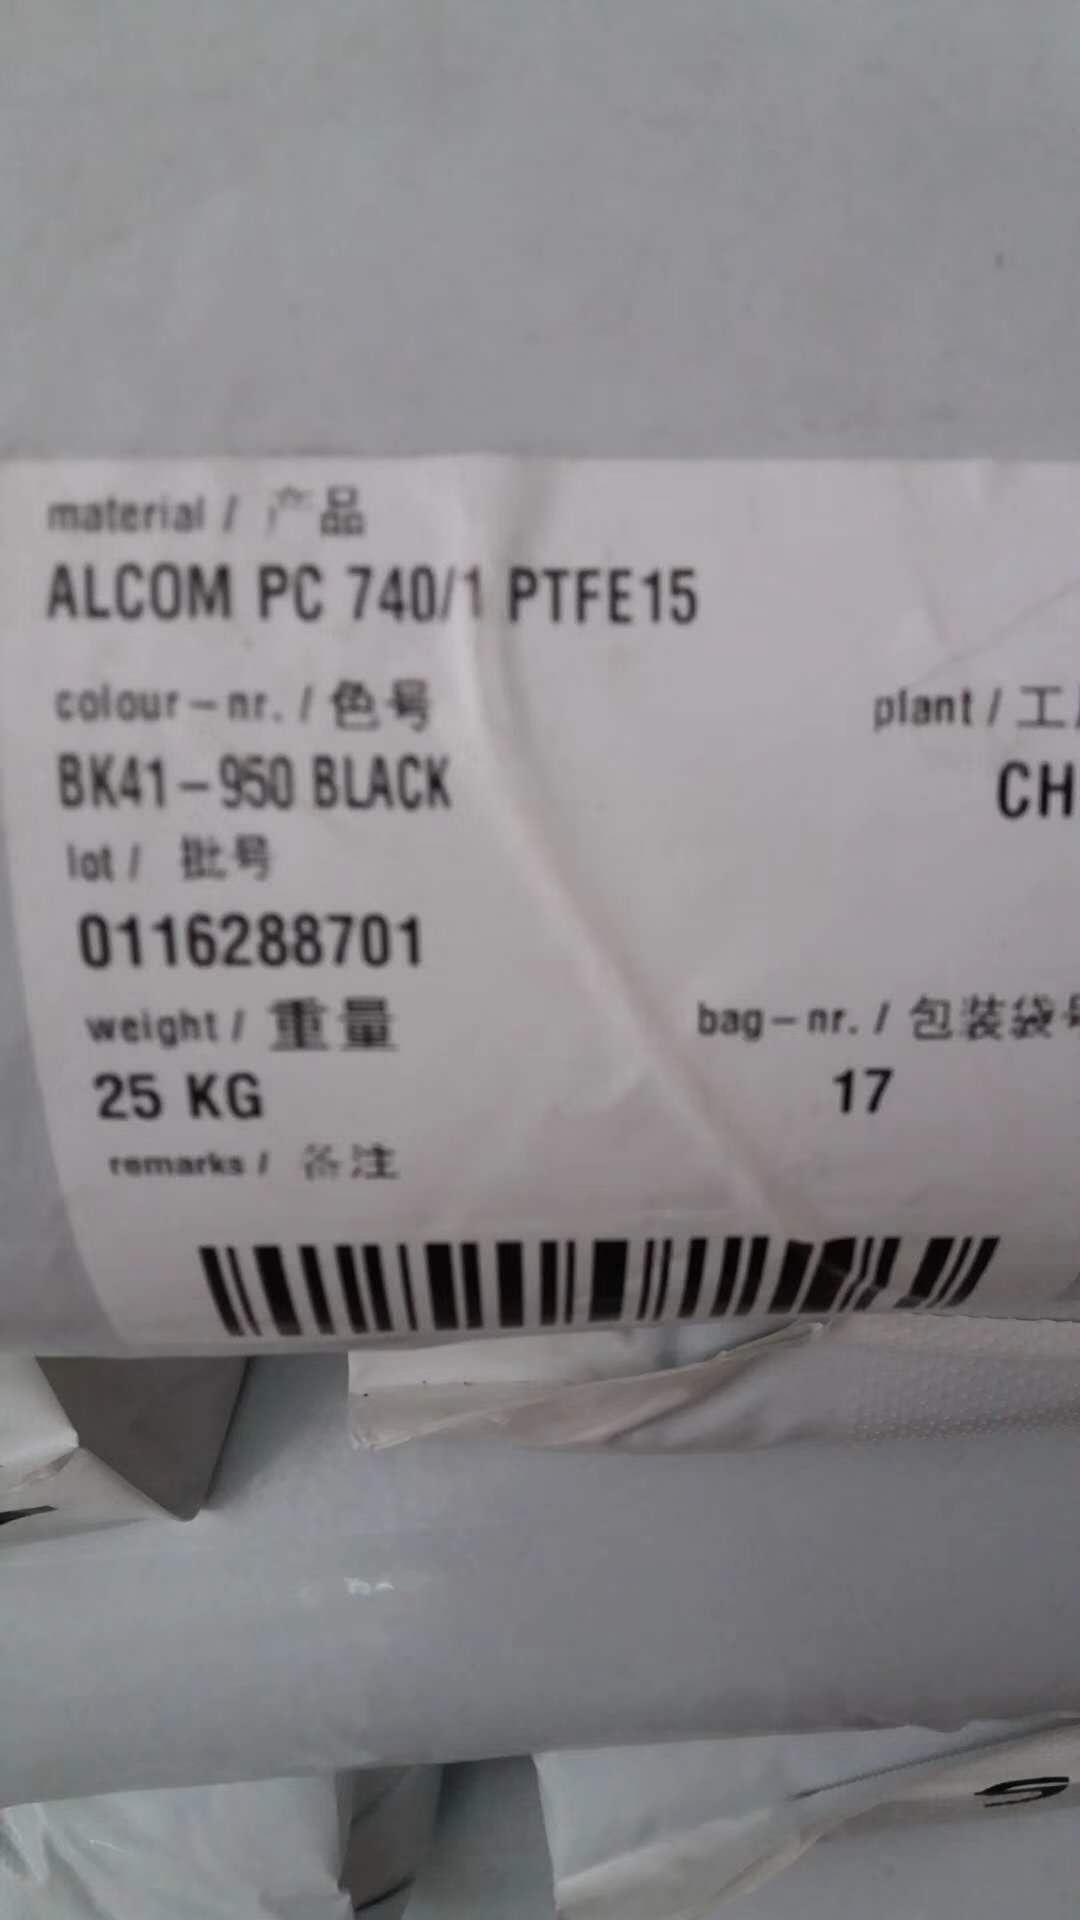 ALcom PC 740-1 PTFE15 BK41-950 BLACK